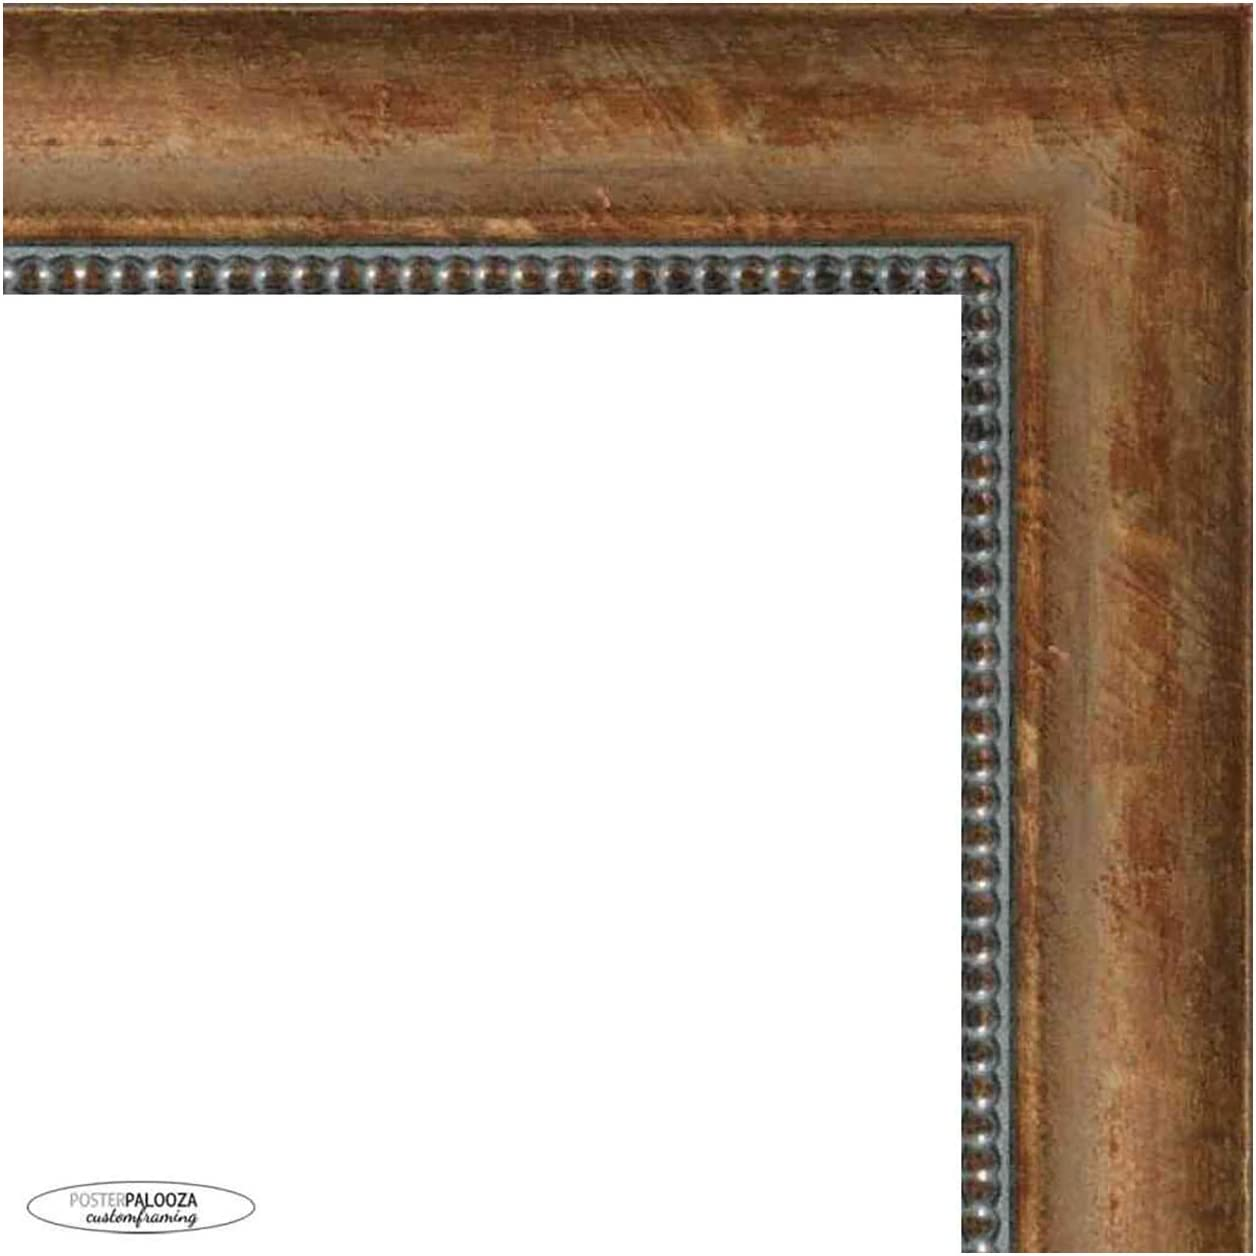 It is very popular Poster Palooza 16.5x11.7 Traditional discount Acid Complete Wood Picture